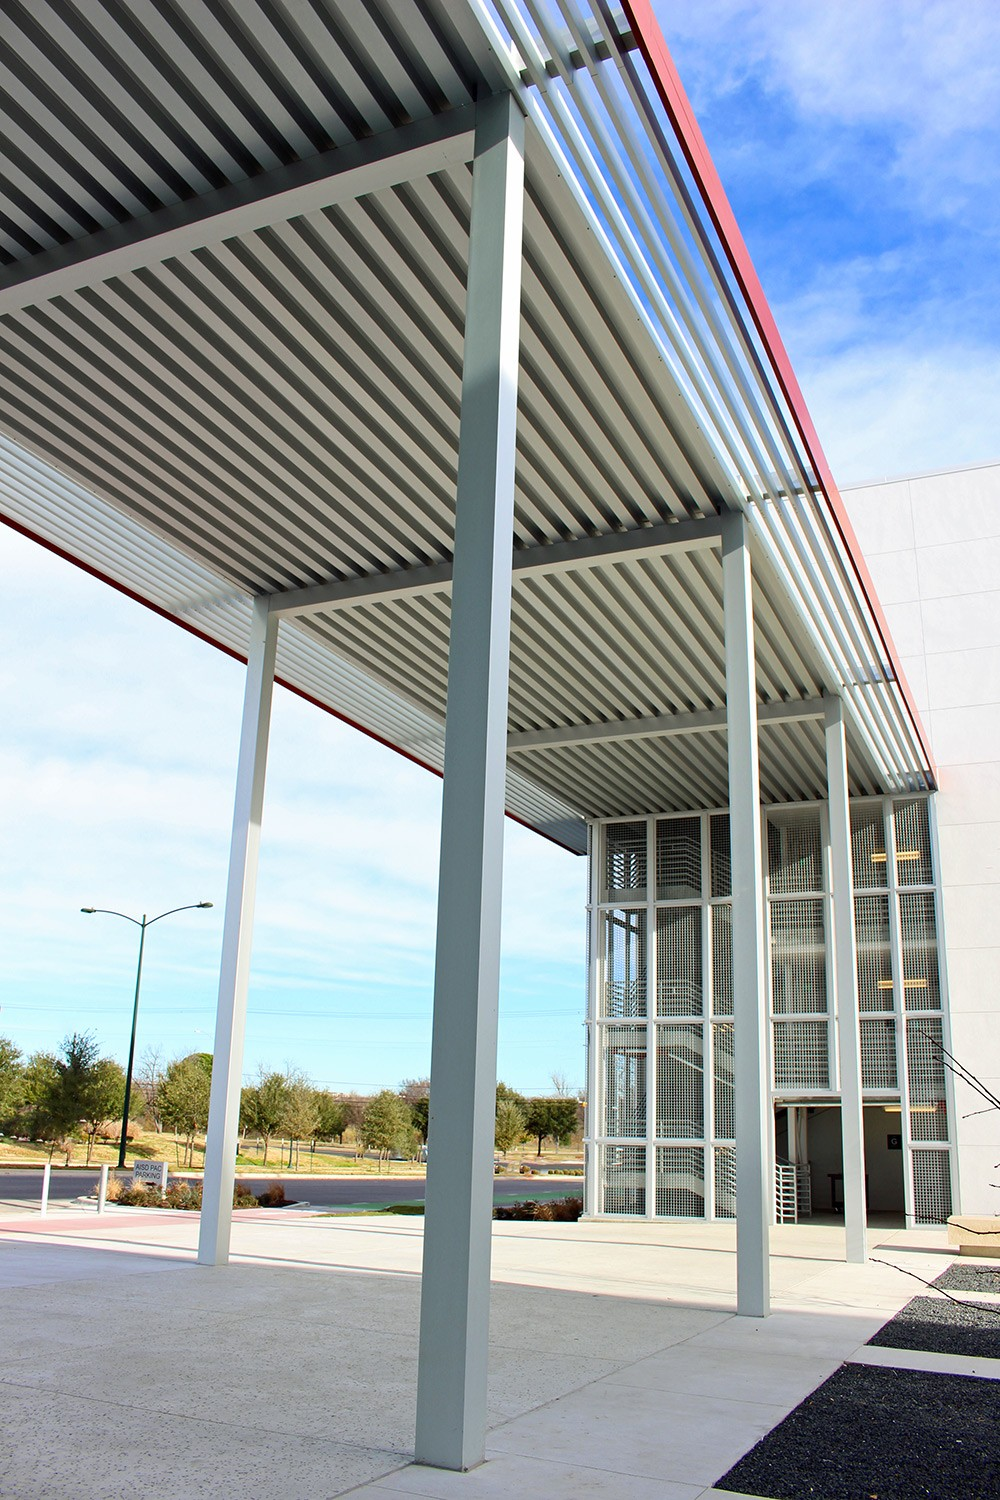 austin-isd-performing-arts-center-4 - Awning